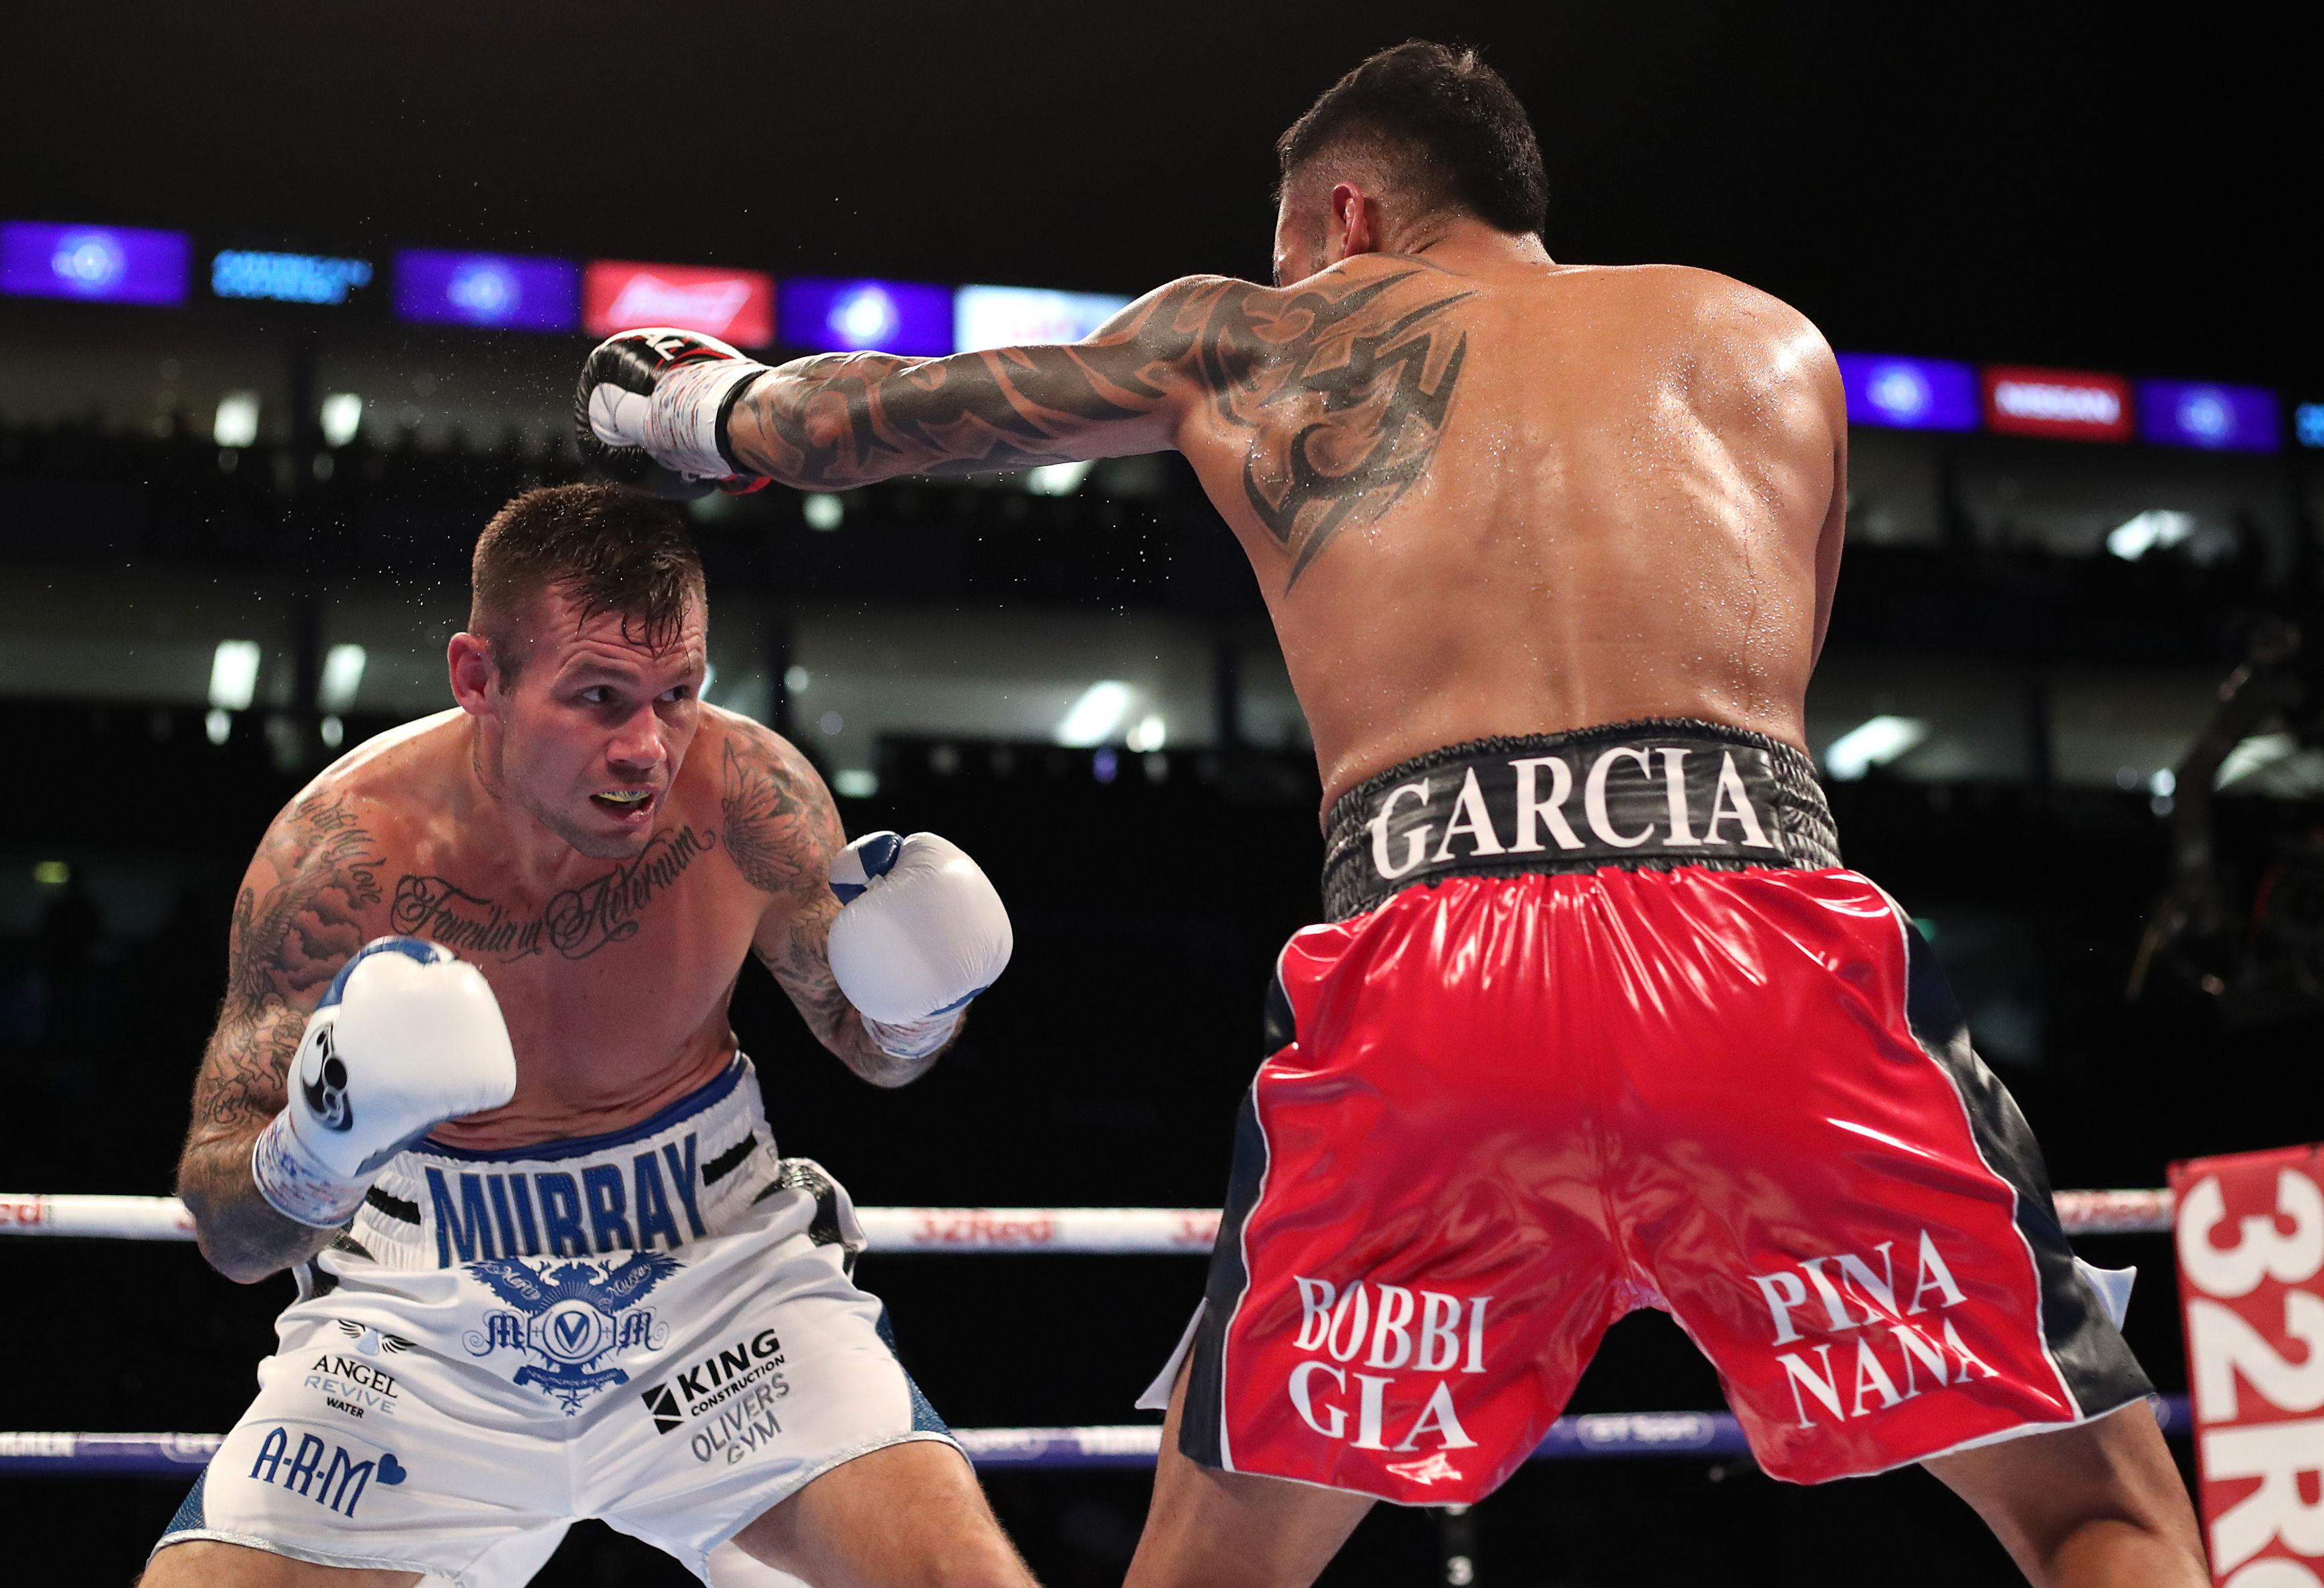 Murray makes Garcia miss during the bout